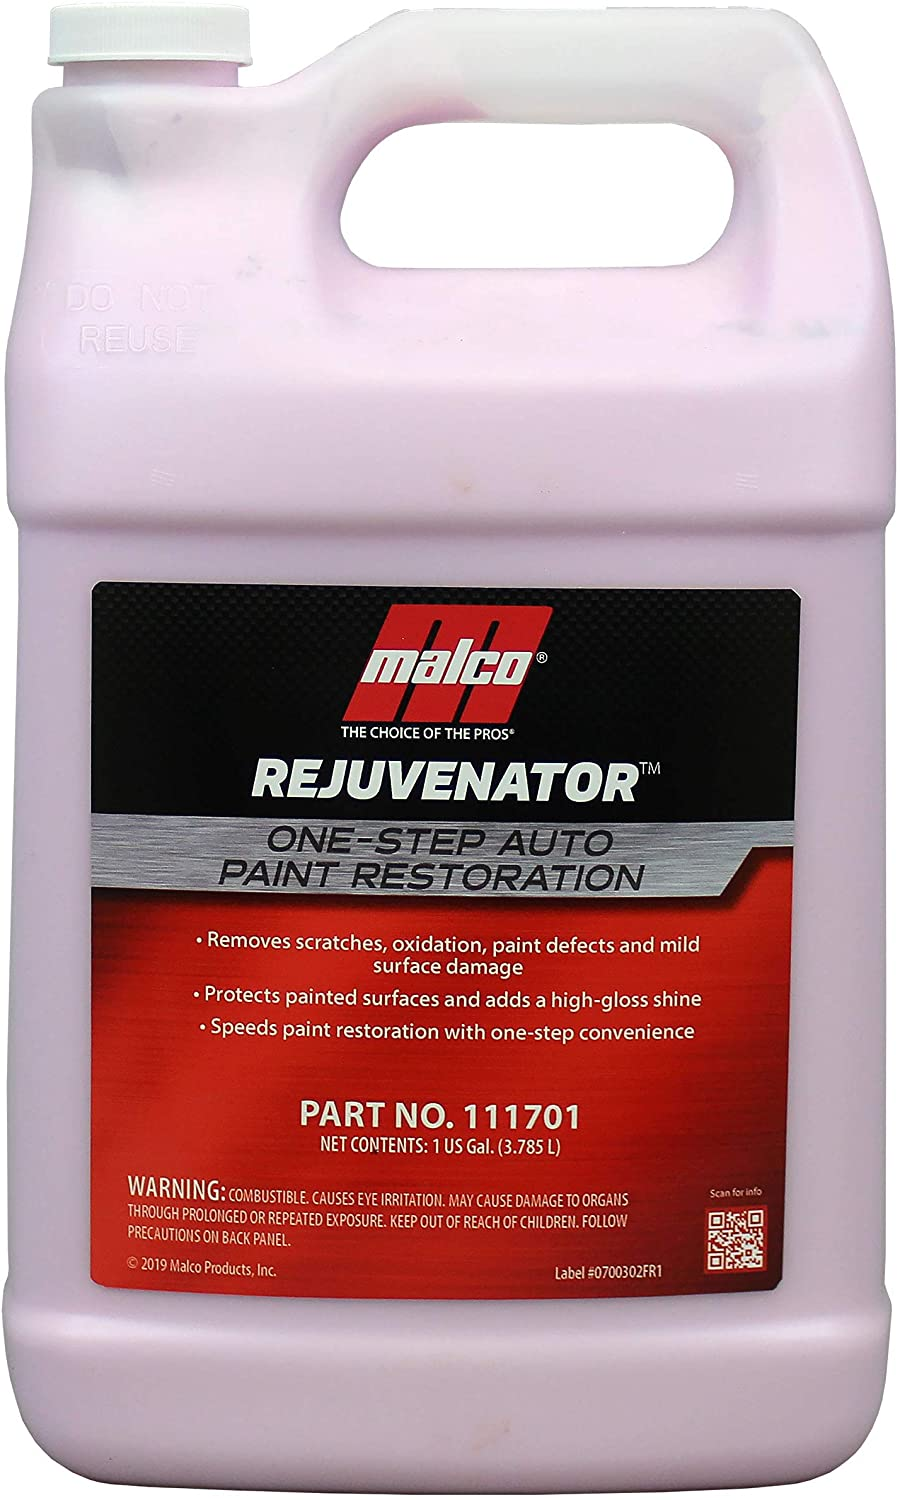 Malco Paint Rejuvenator - One Step Automotive Paint Restoration/Clear Coat Scratch and Swirl Remover/Re-Shine Old, Aged Paint to Look New / 1 Gallon (111701)